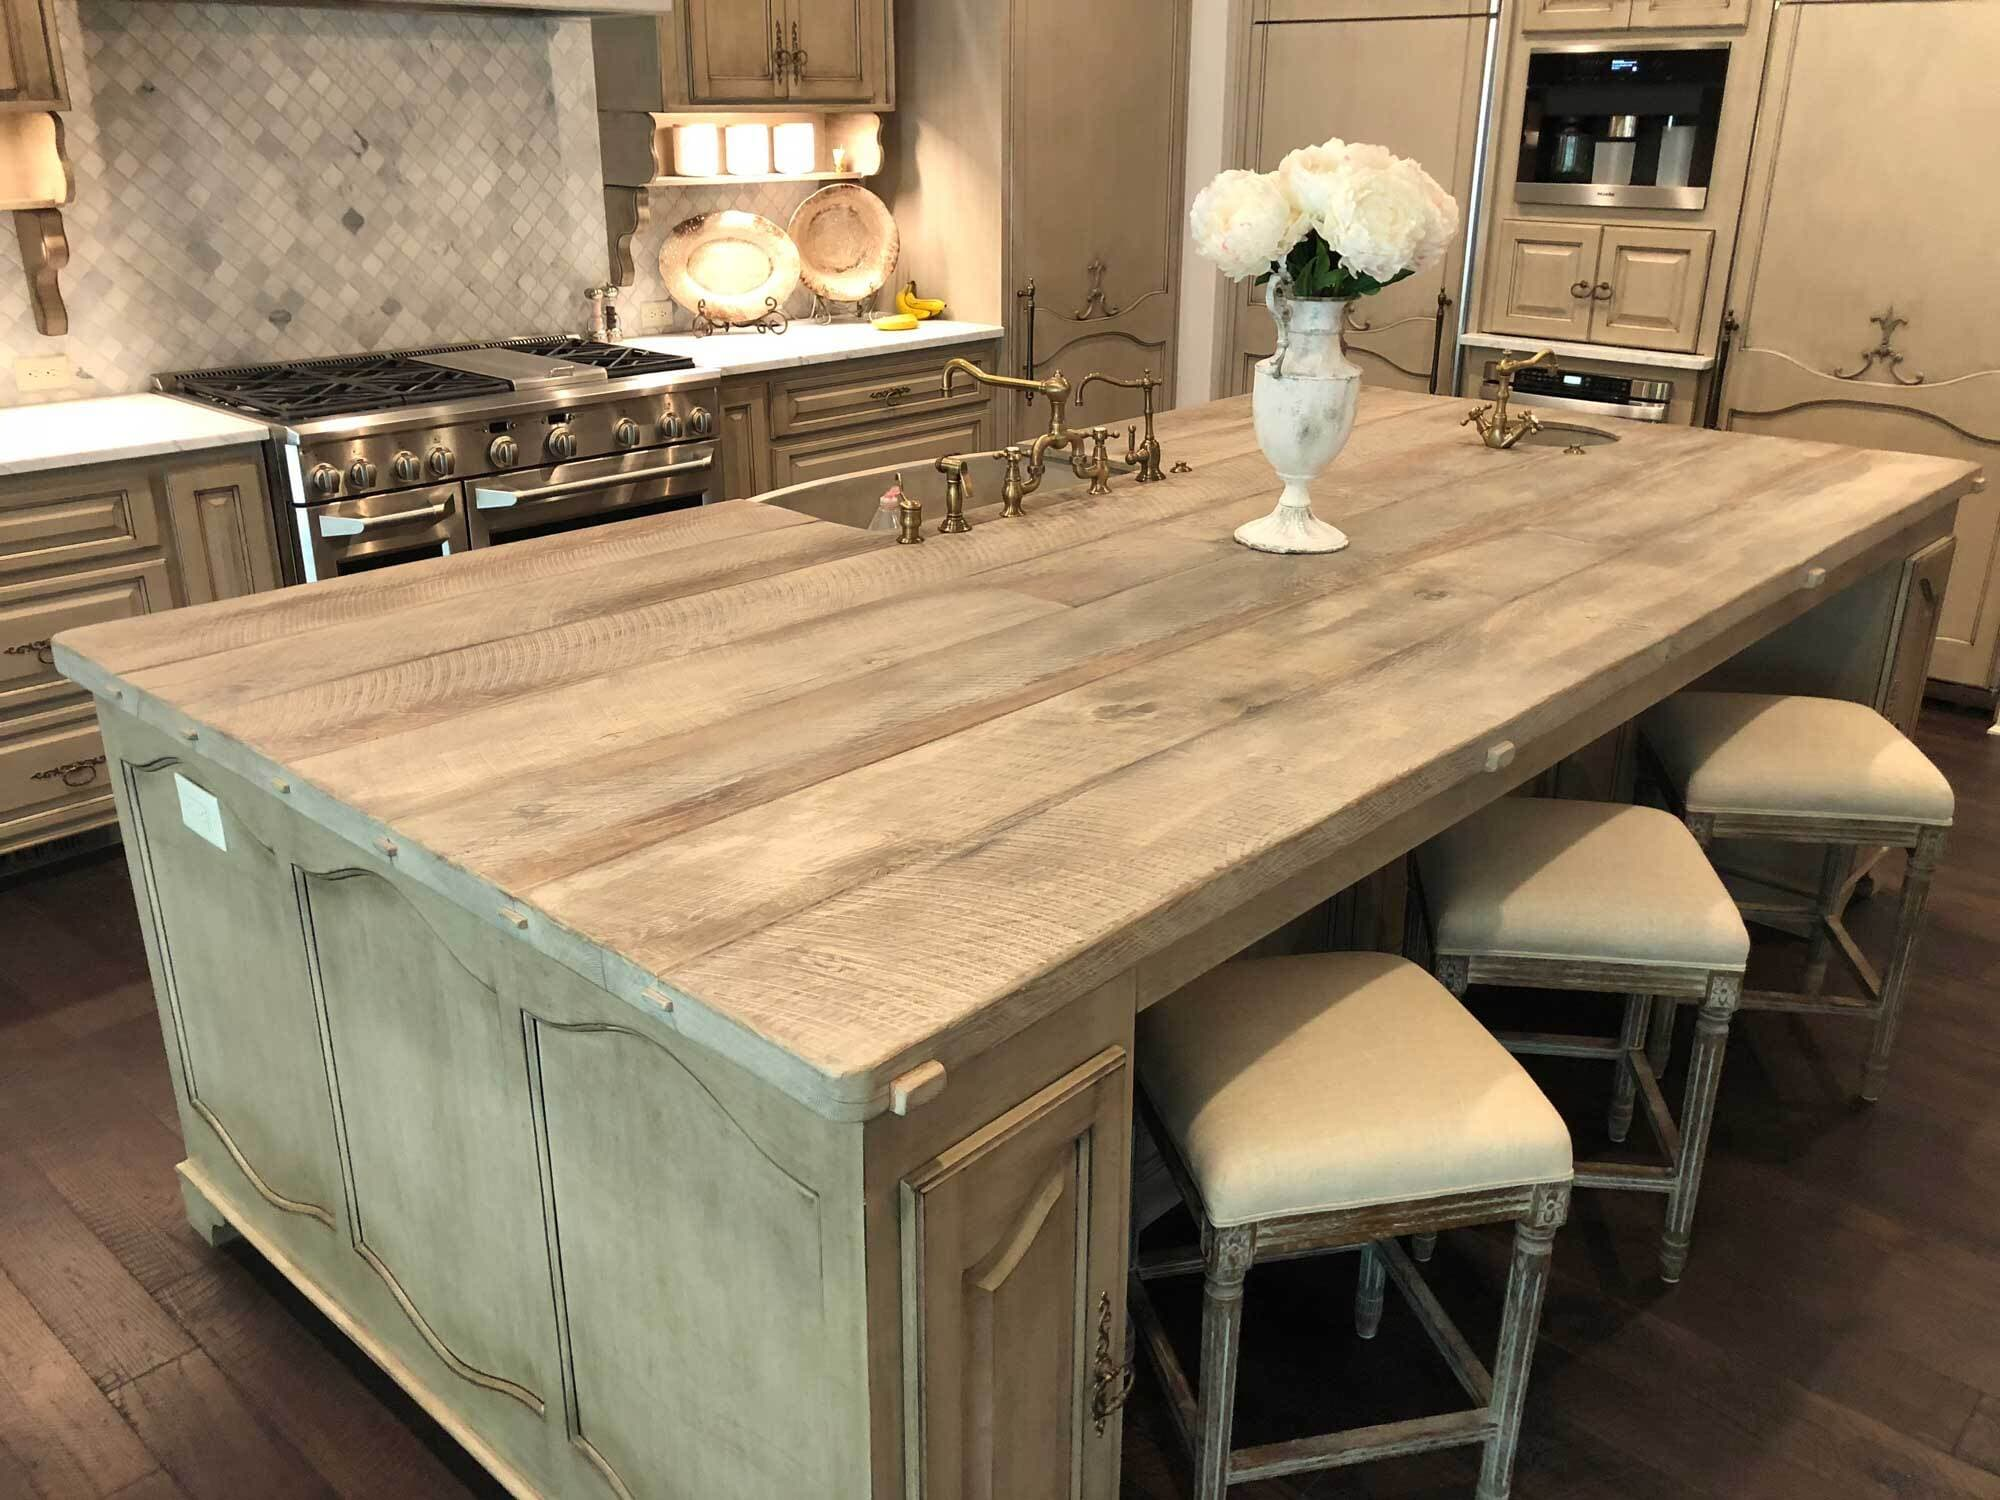 Reclaimed wood countertop for kitchen island.